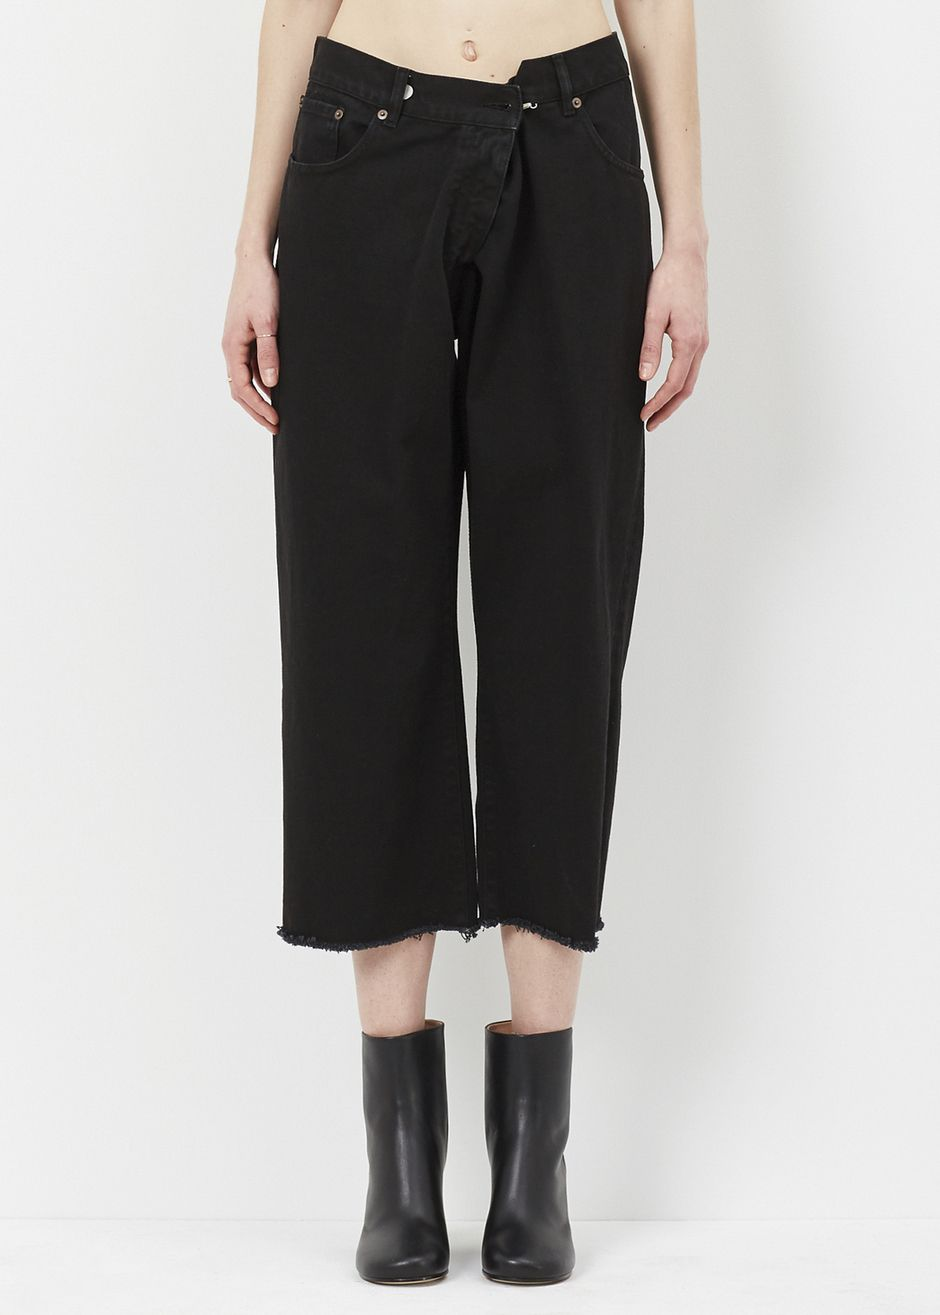 five pocket palazzo trousers - Black Maison Martin Margiela Sale Authentic Pictures Sale Online kbV9cPBpr